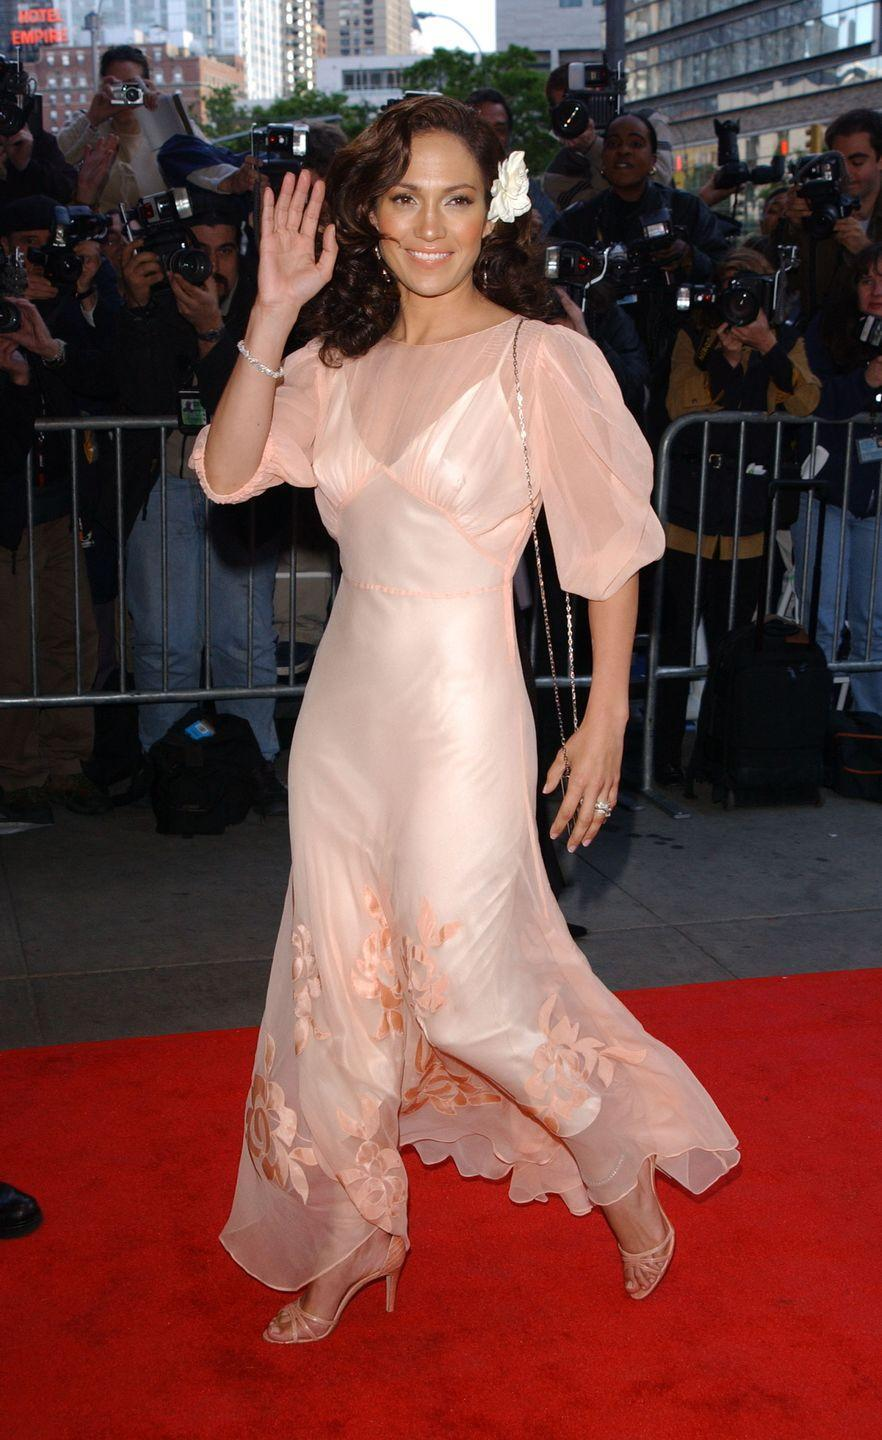 <p><strong>When: </strong>May 2002</p><p><strong>Where: </strong>Enough premiere</p><p><strong>Wearing: </strong>A sheer pink dress</p>